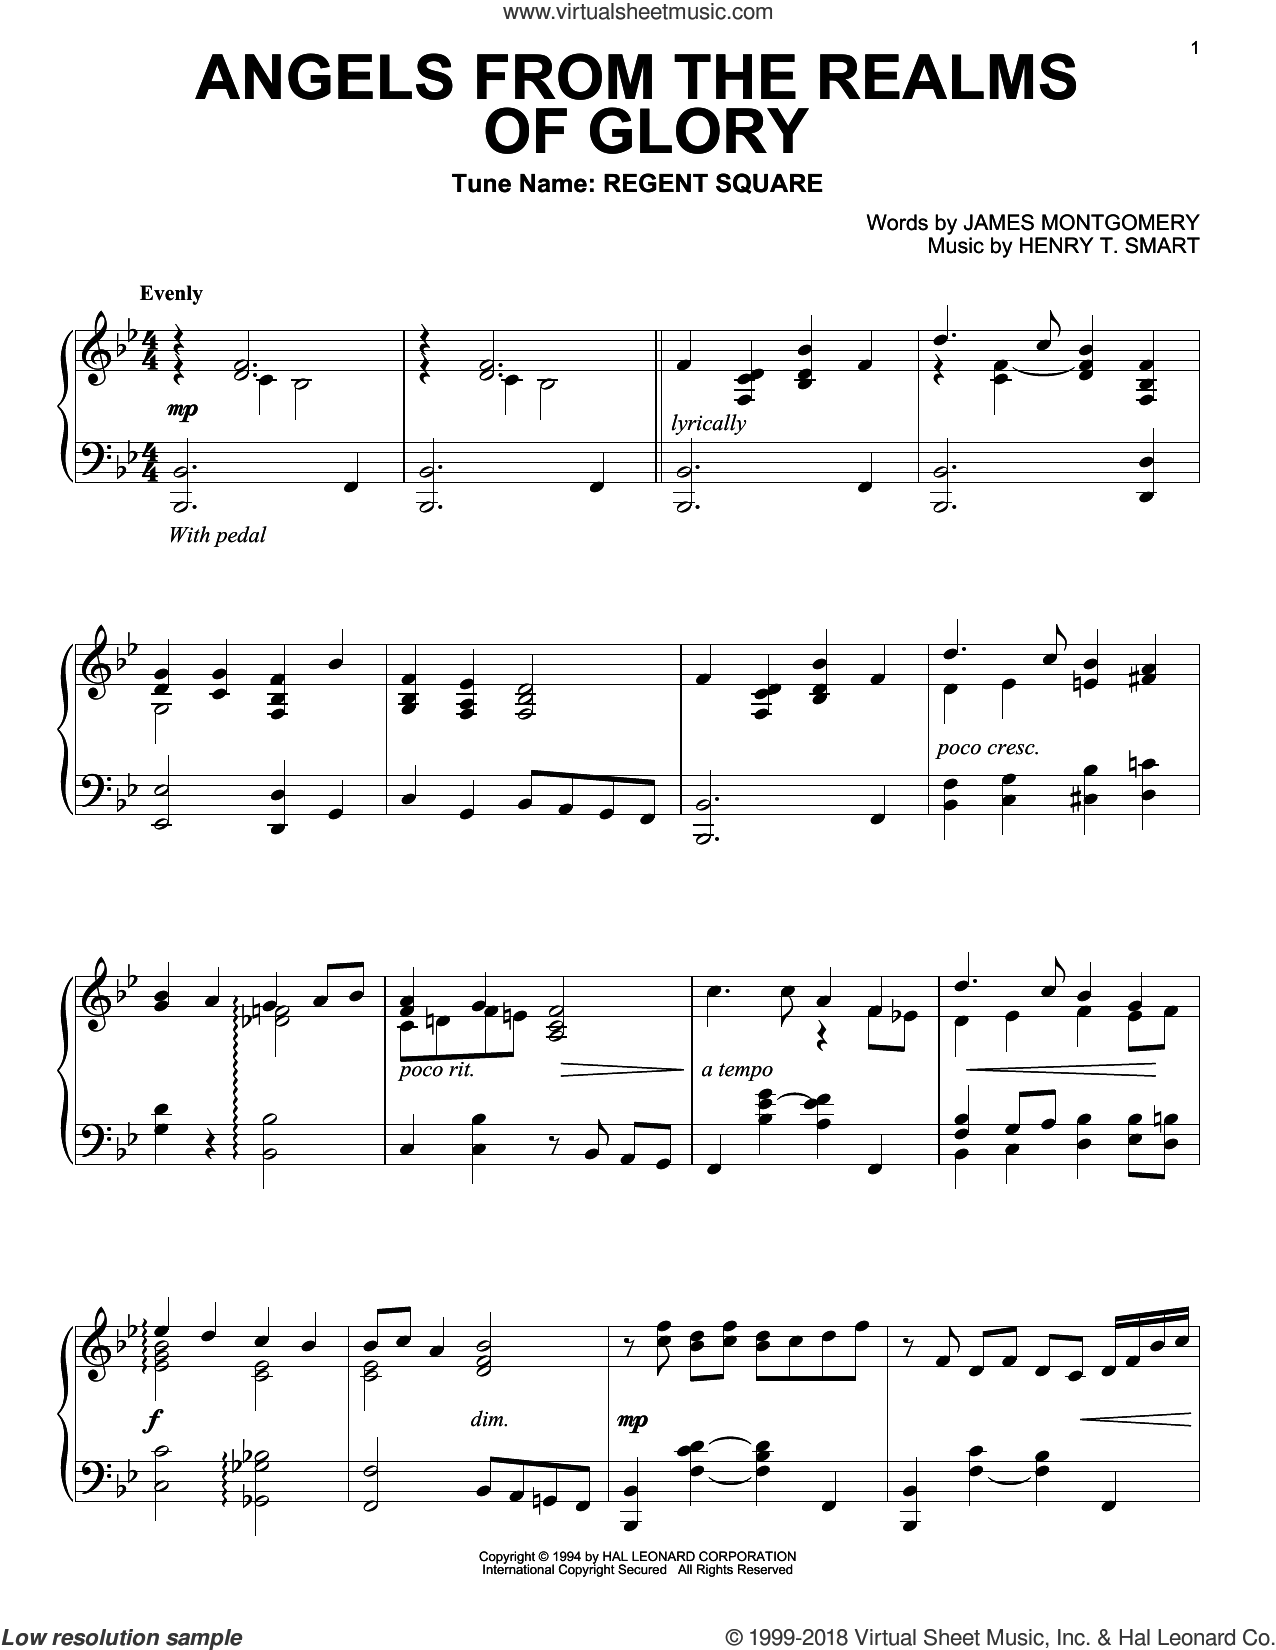 Angels From The Realms Of Glory sheet music for piano solo by Henry T. Smart and James Montgomery. Score Image Preview.